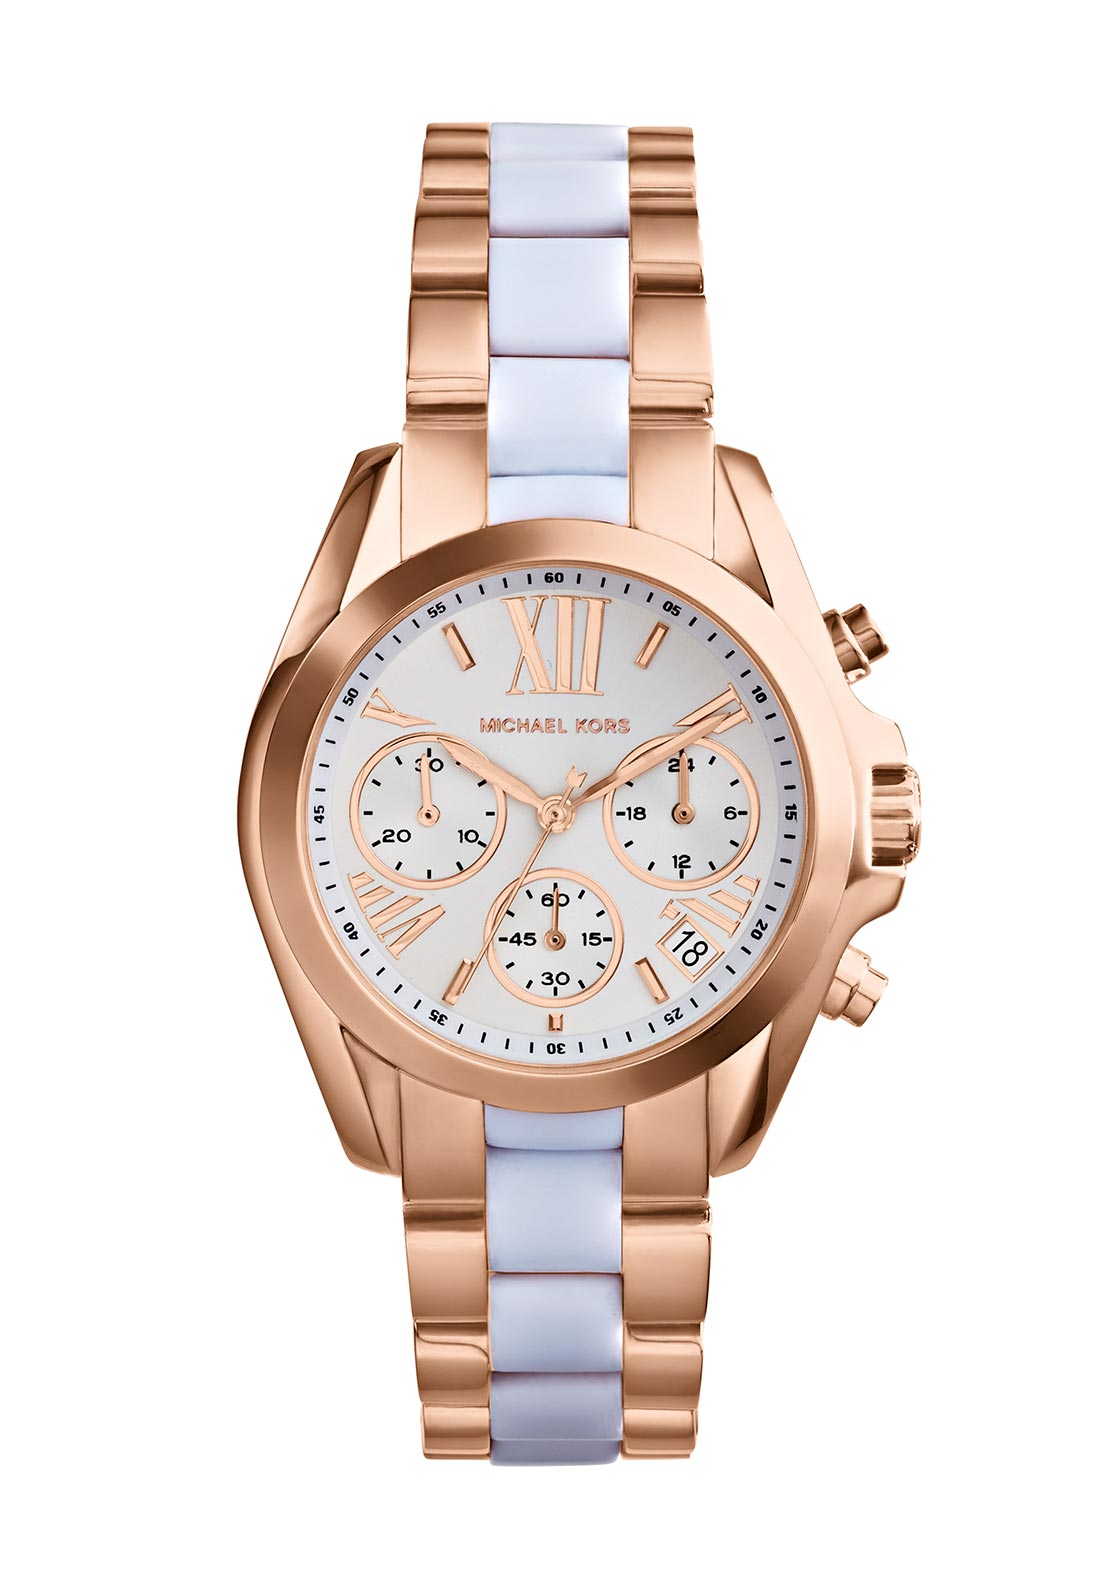 Michael Kors Womens Bradshaw Chronograph White Watch, Rose Gold